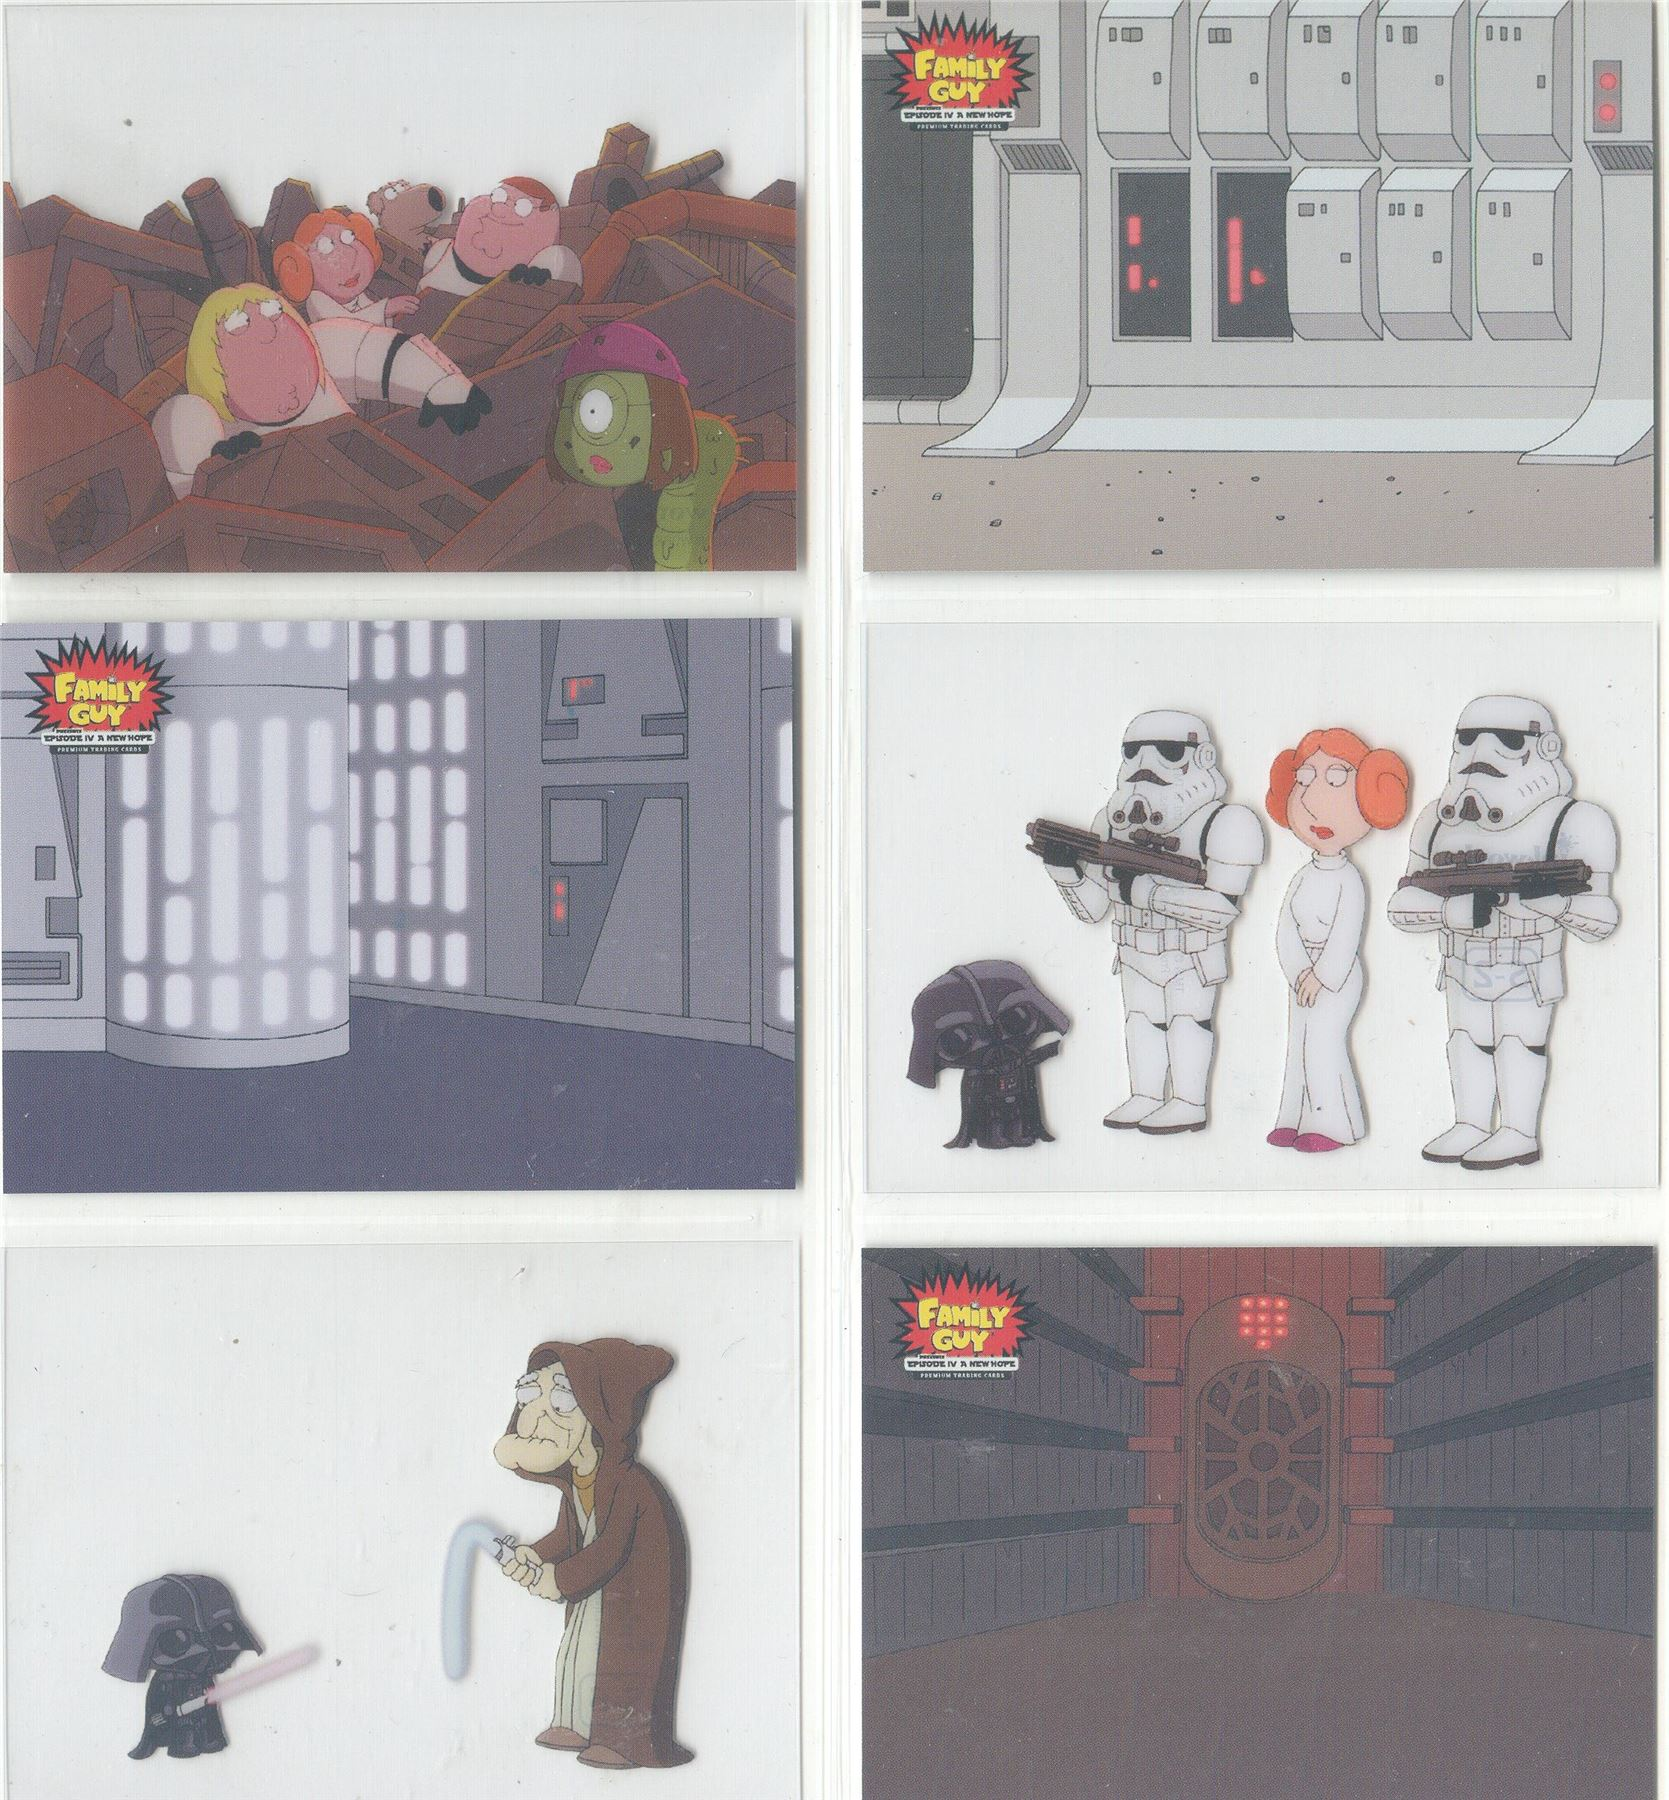 Family Guy Star Wars ANH Scenes From Space Chase Card S-5